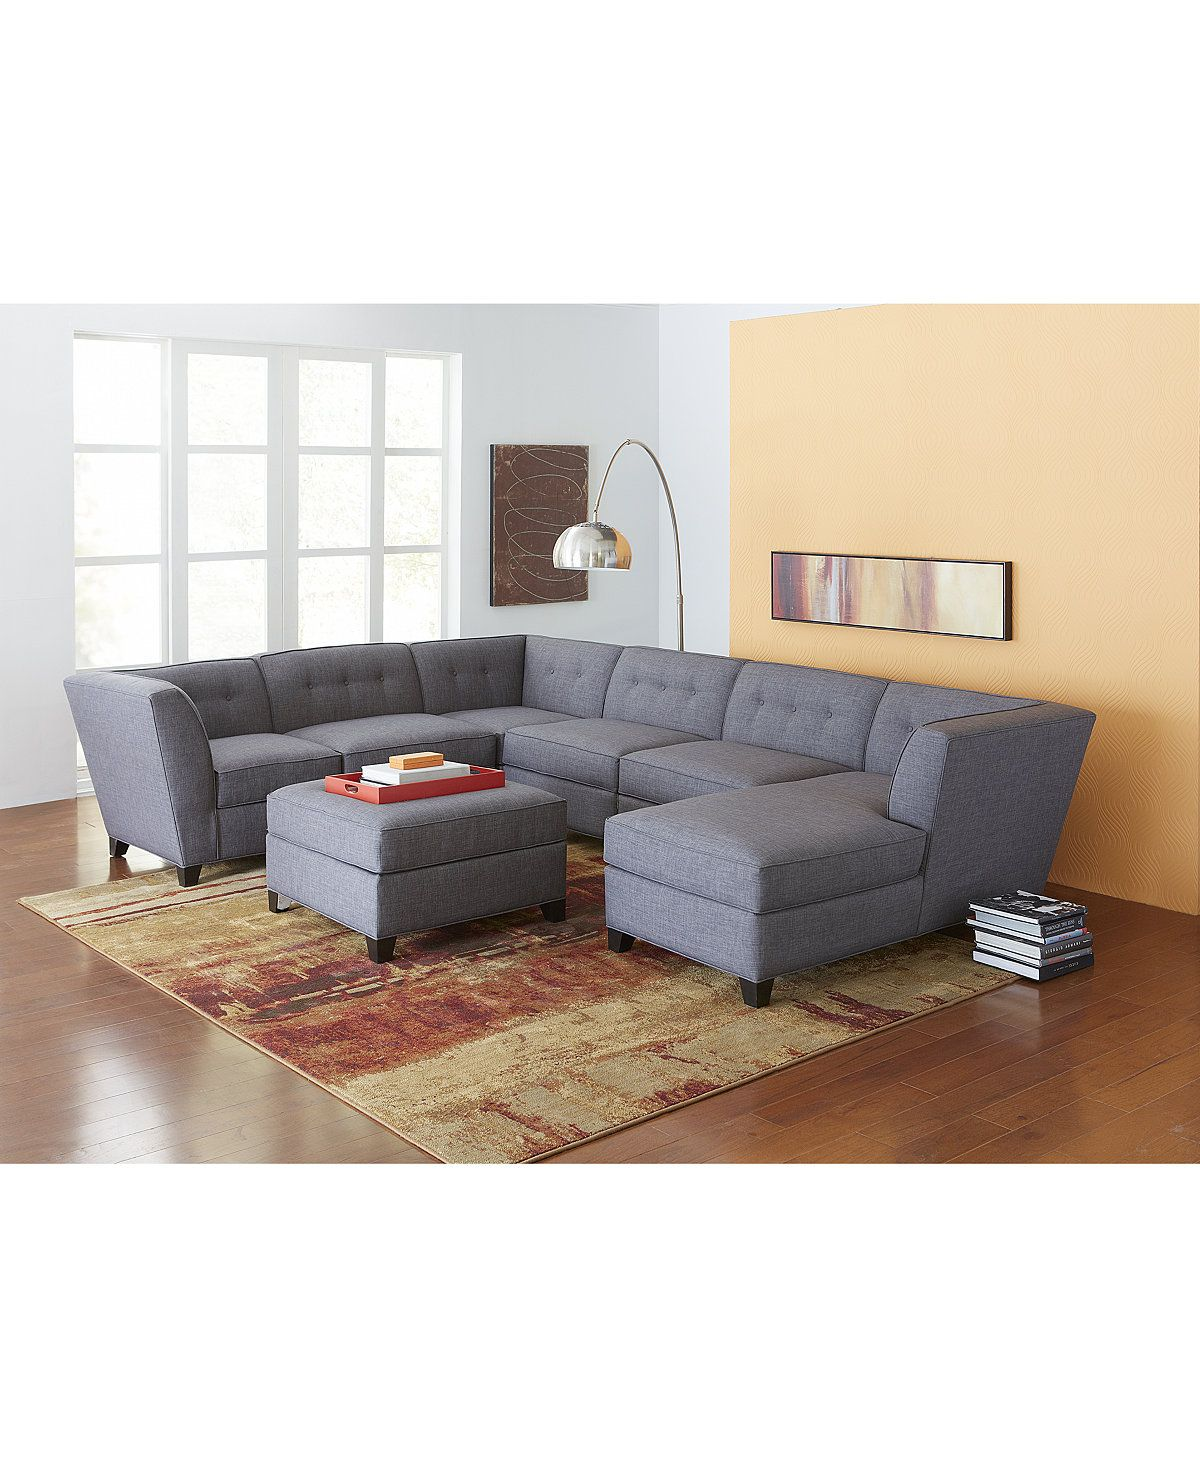 harper fabric 6 piece modular sectional sofa rv beds canada with chaise ottoman sofas furniture macy s